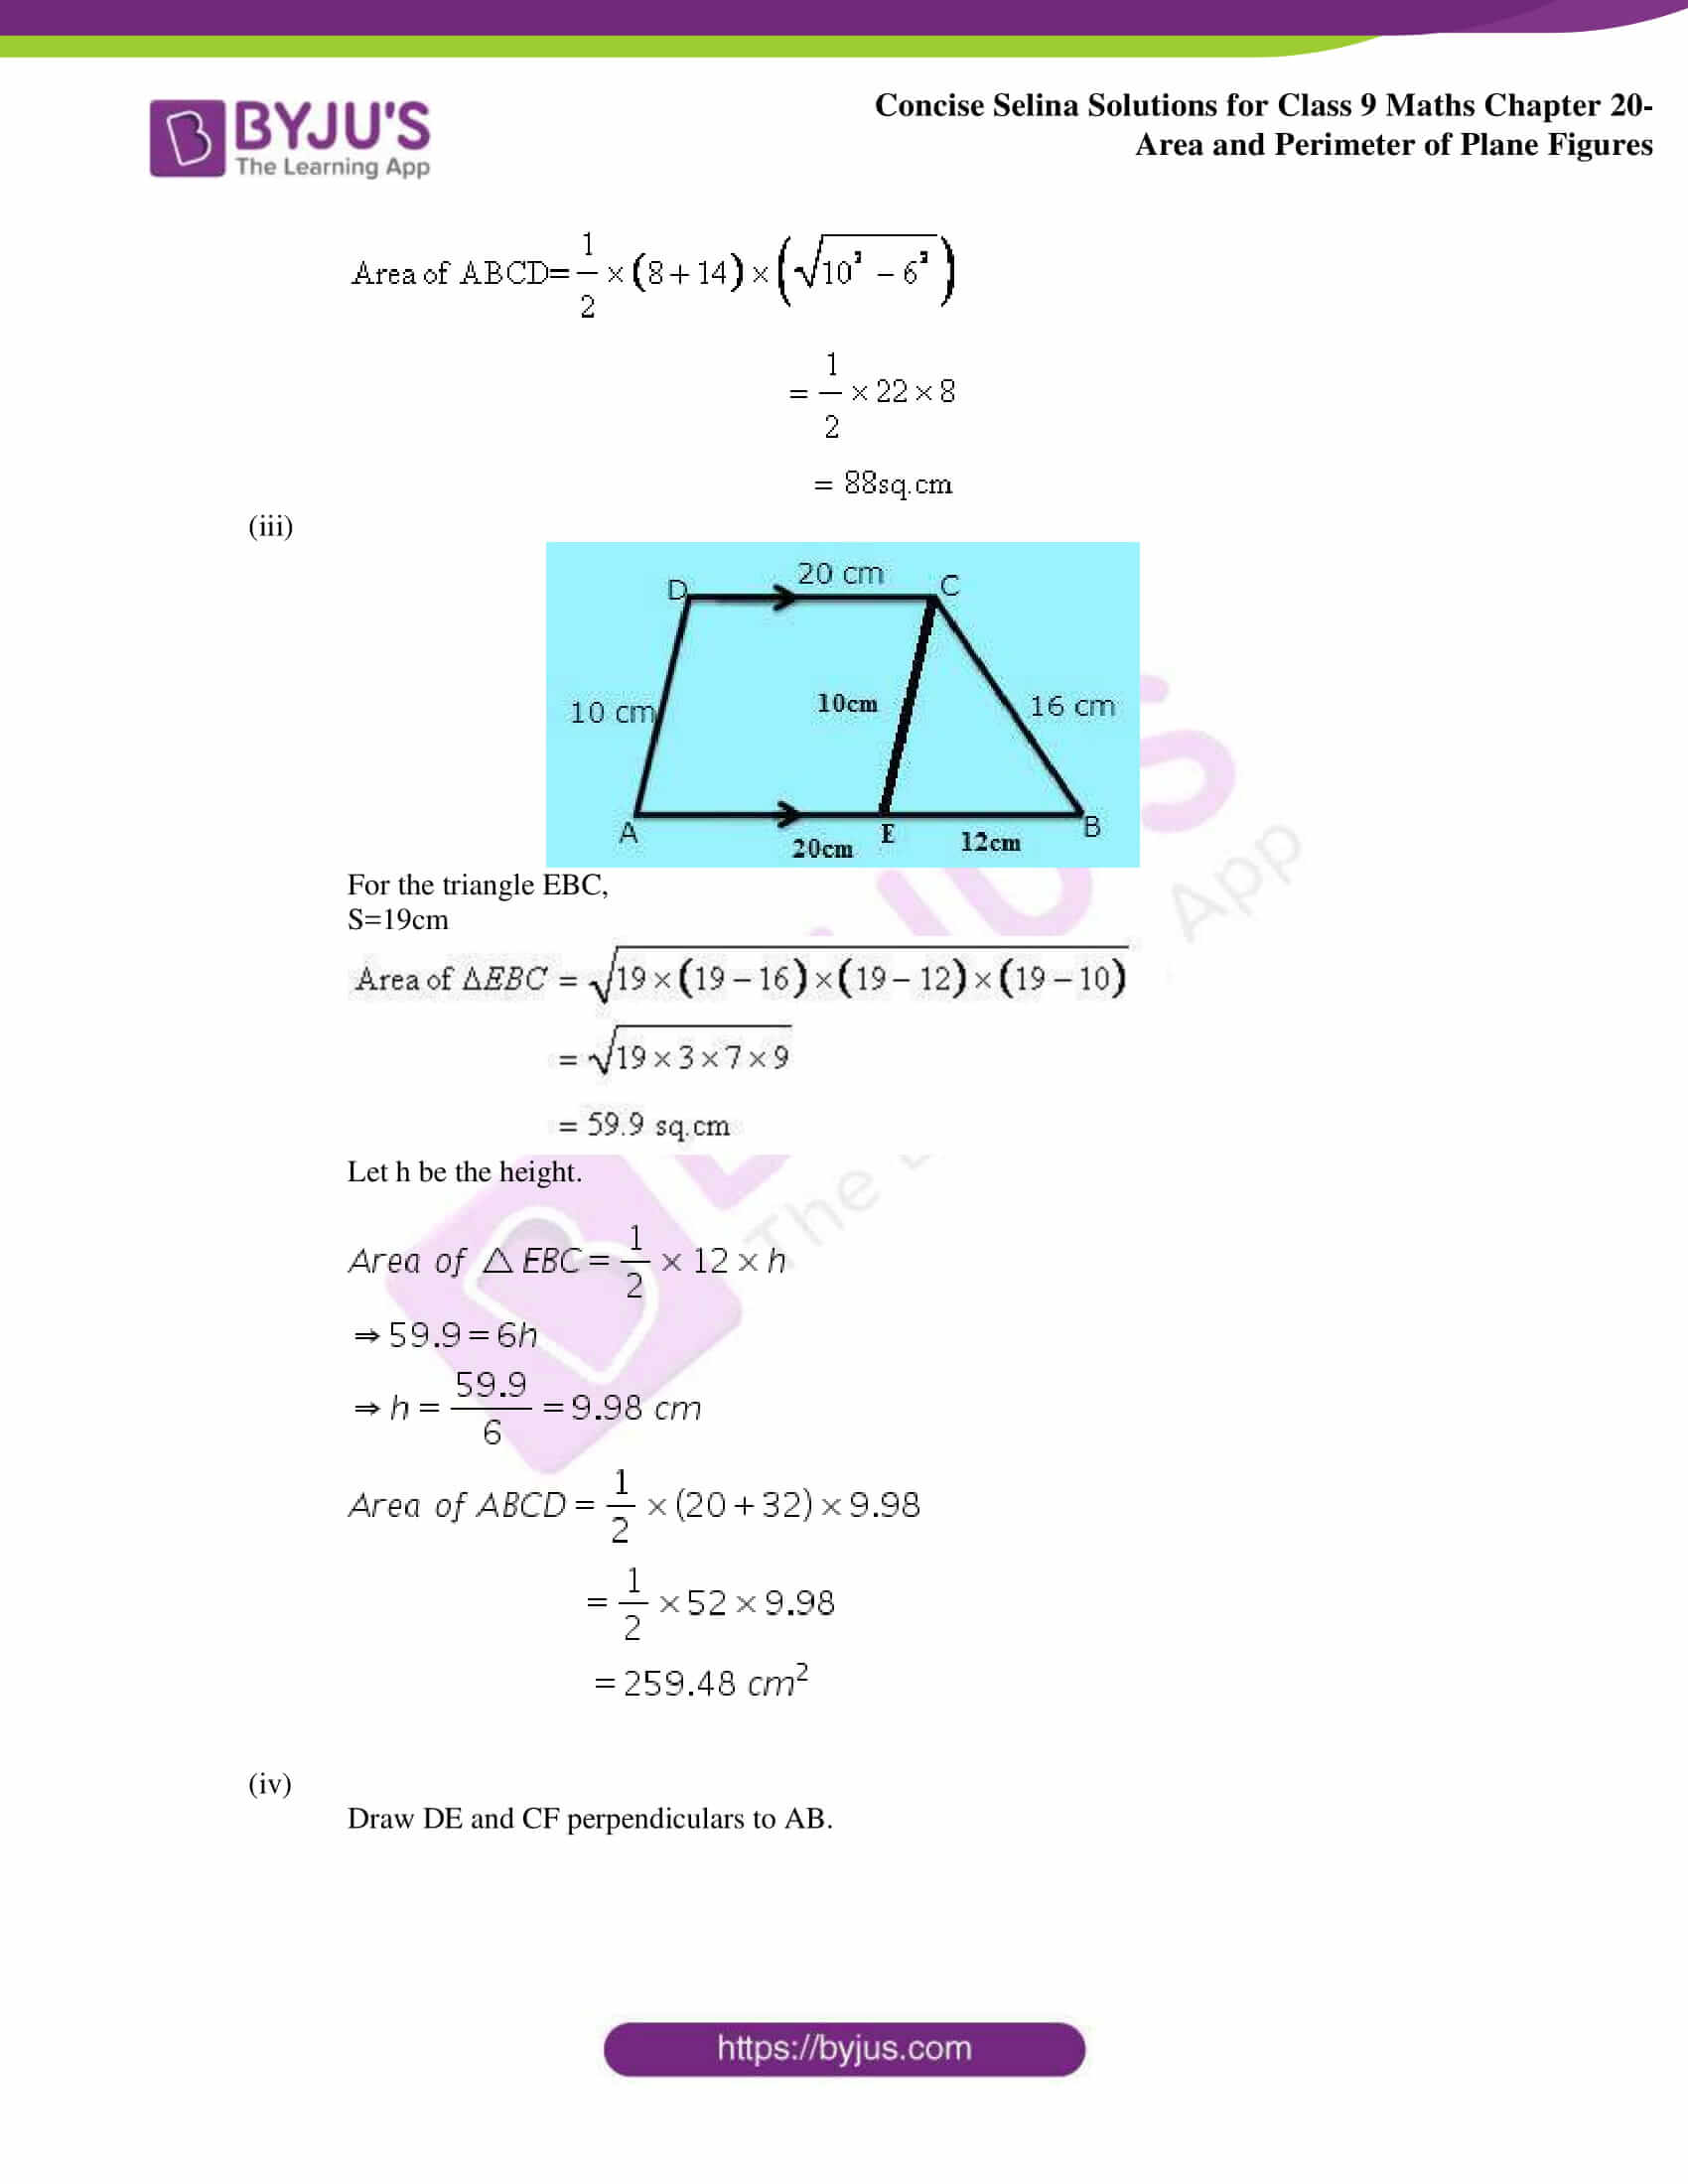 Concise Selina Solutions Class 9 Maths Chapter 20 Area and Perimeter of Plane part 27